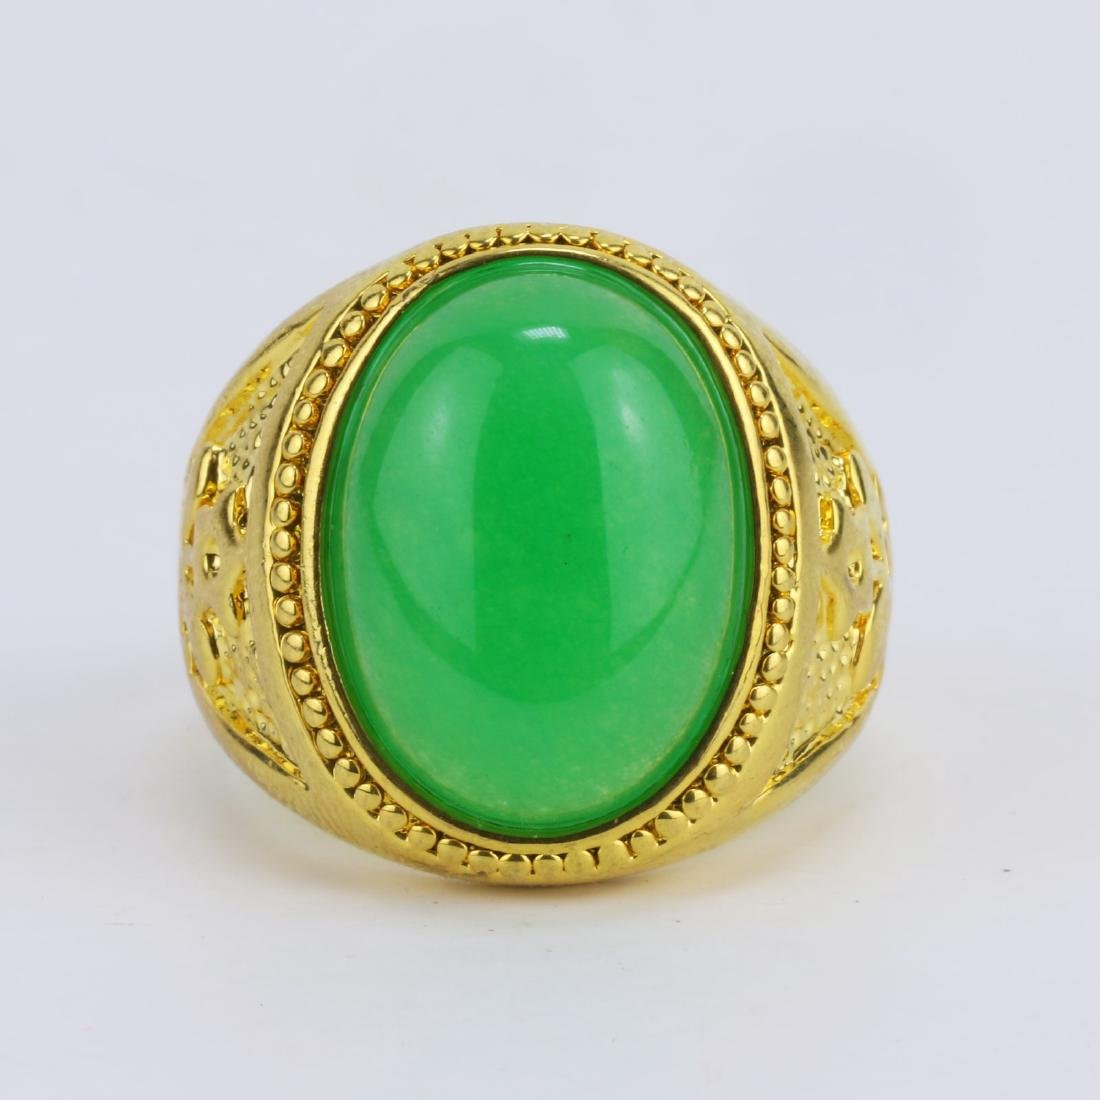 A GREEN JADE OR JADEITE MEN'S RING - 2